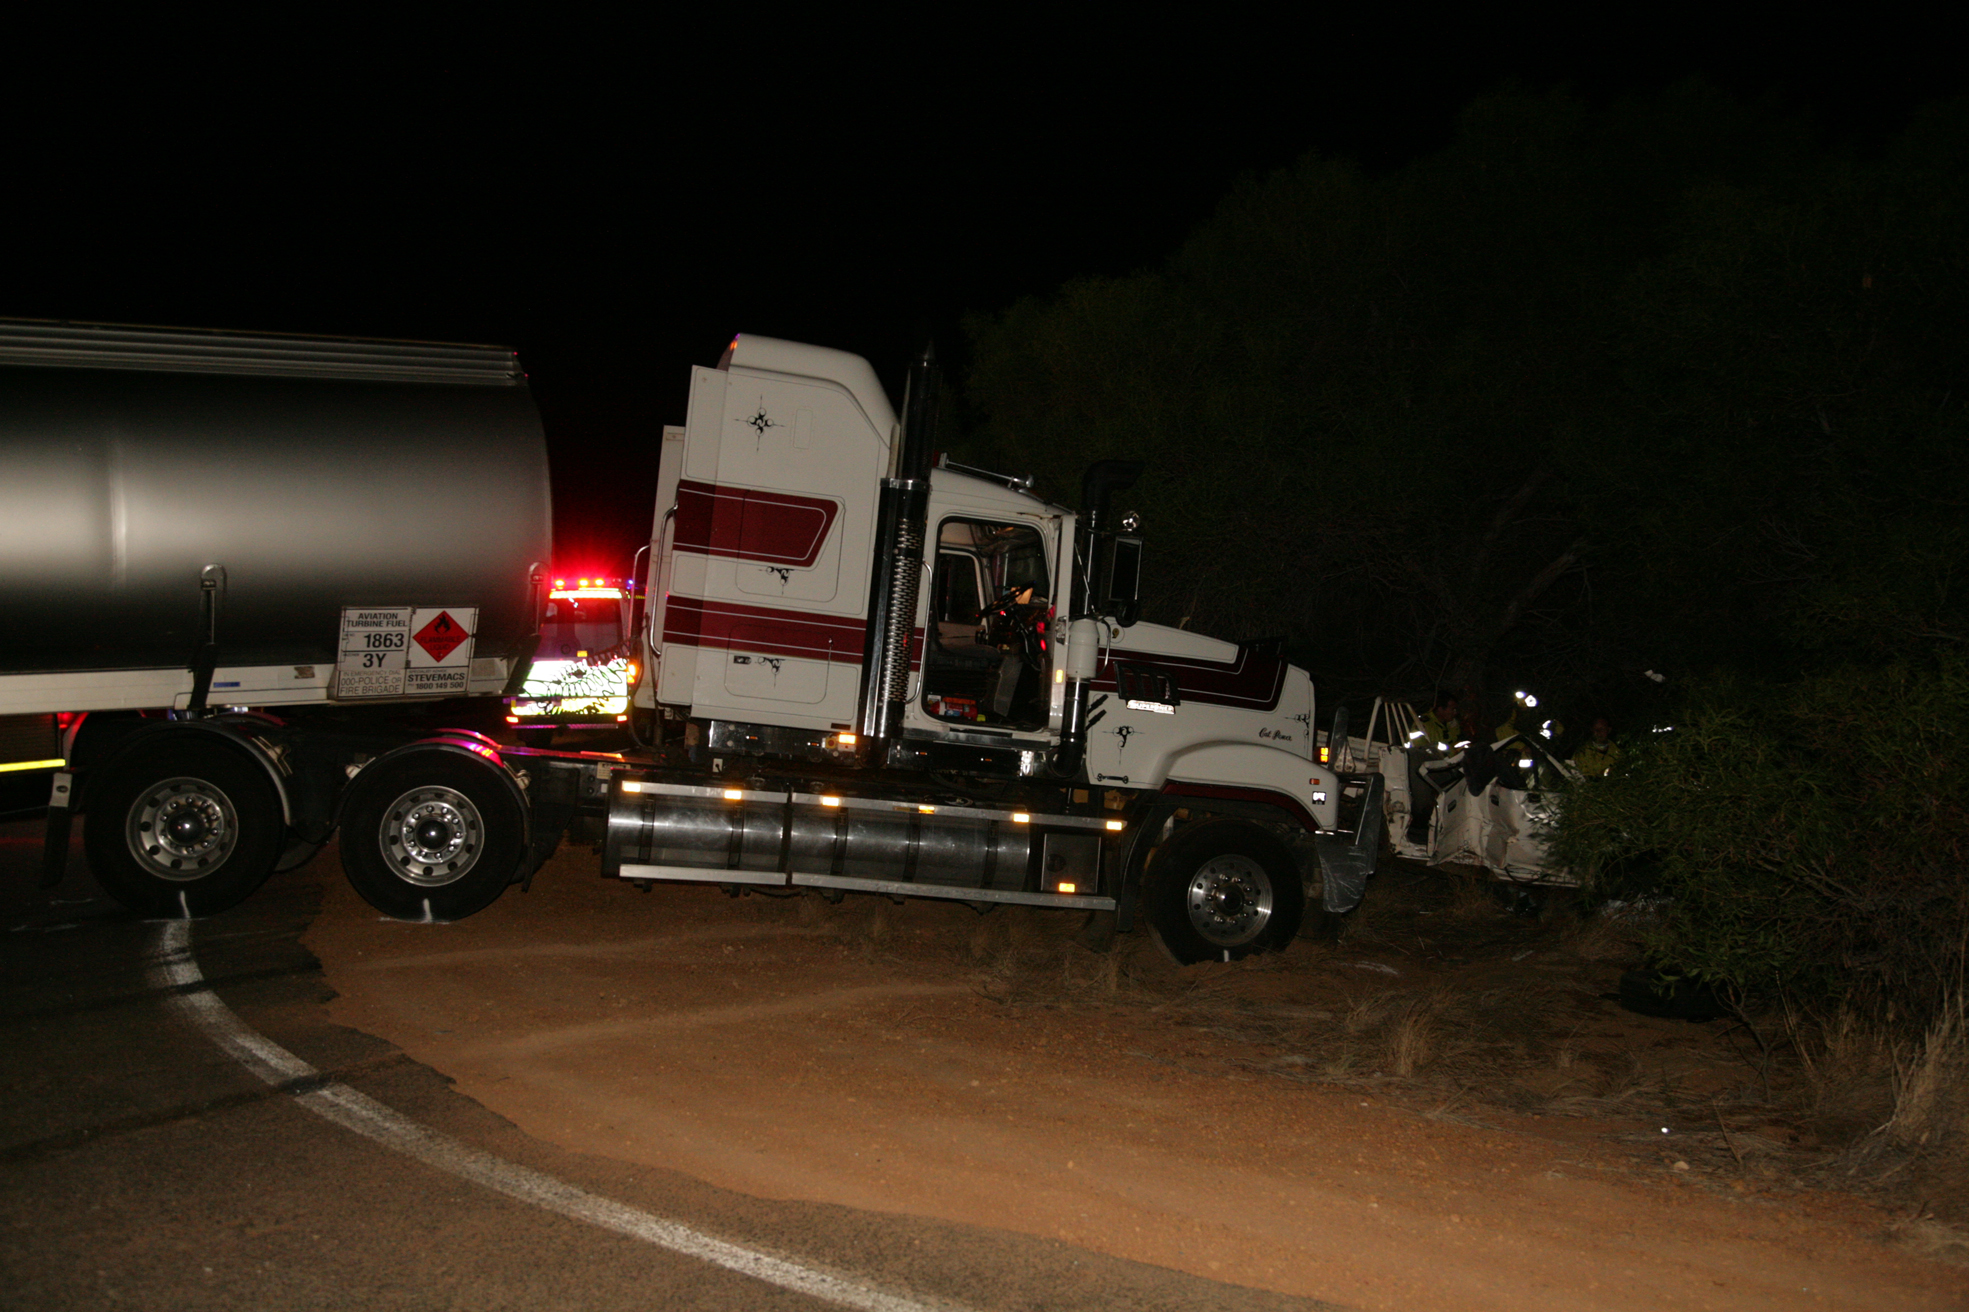 BREAKING NEWS: Major car accident on NWCH - Everything Geraldton